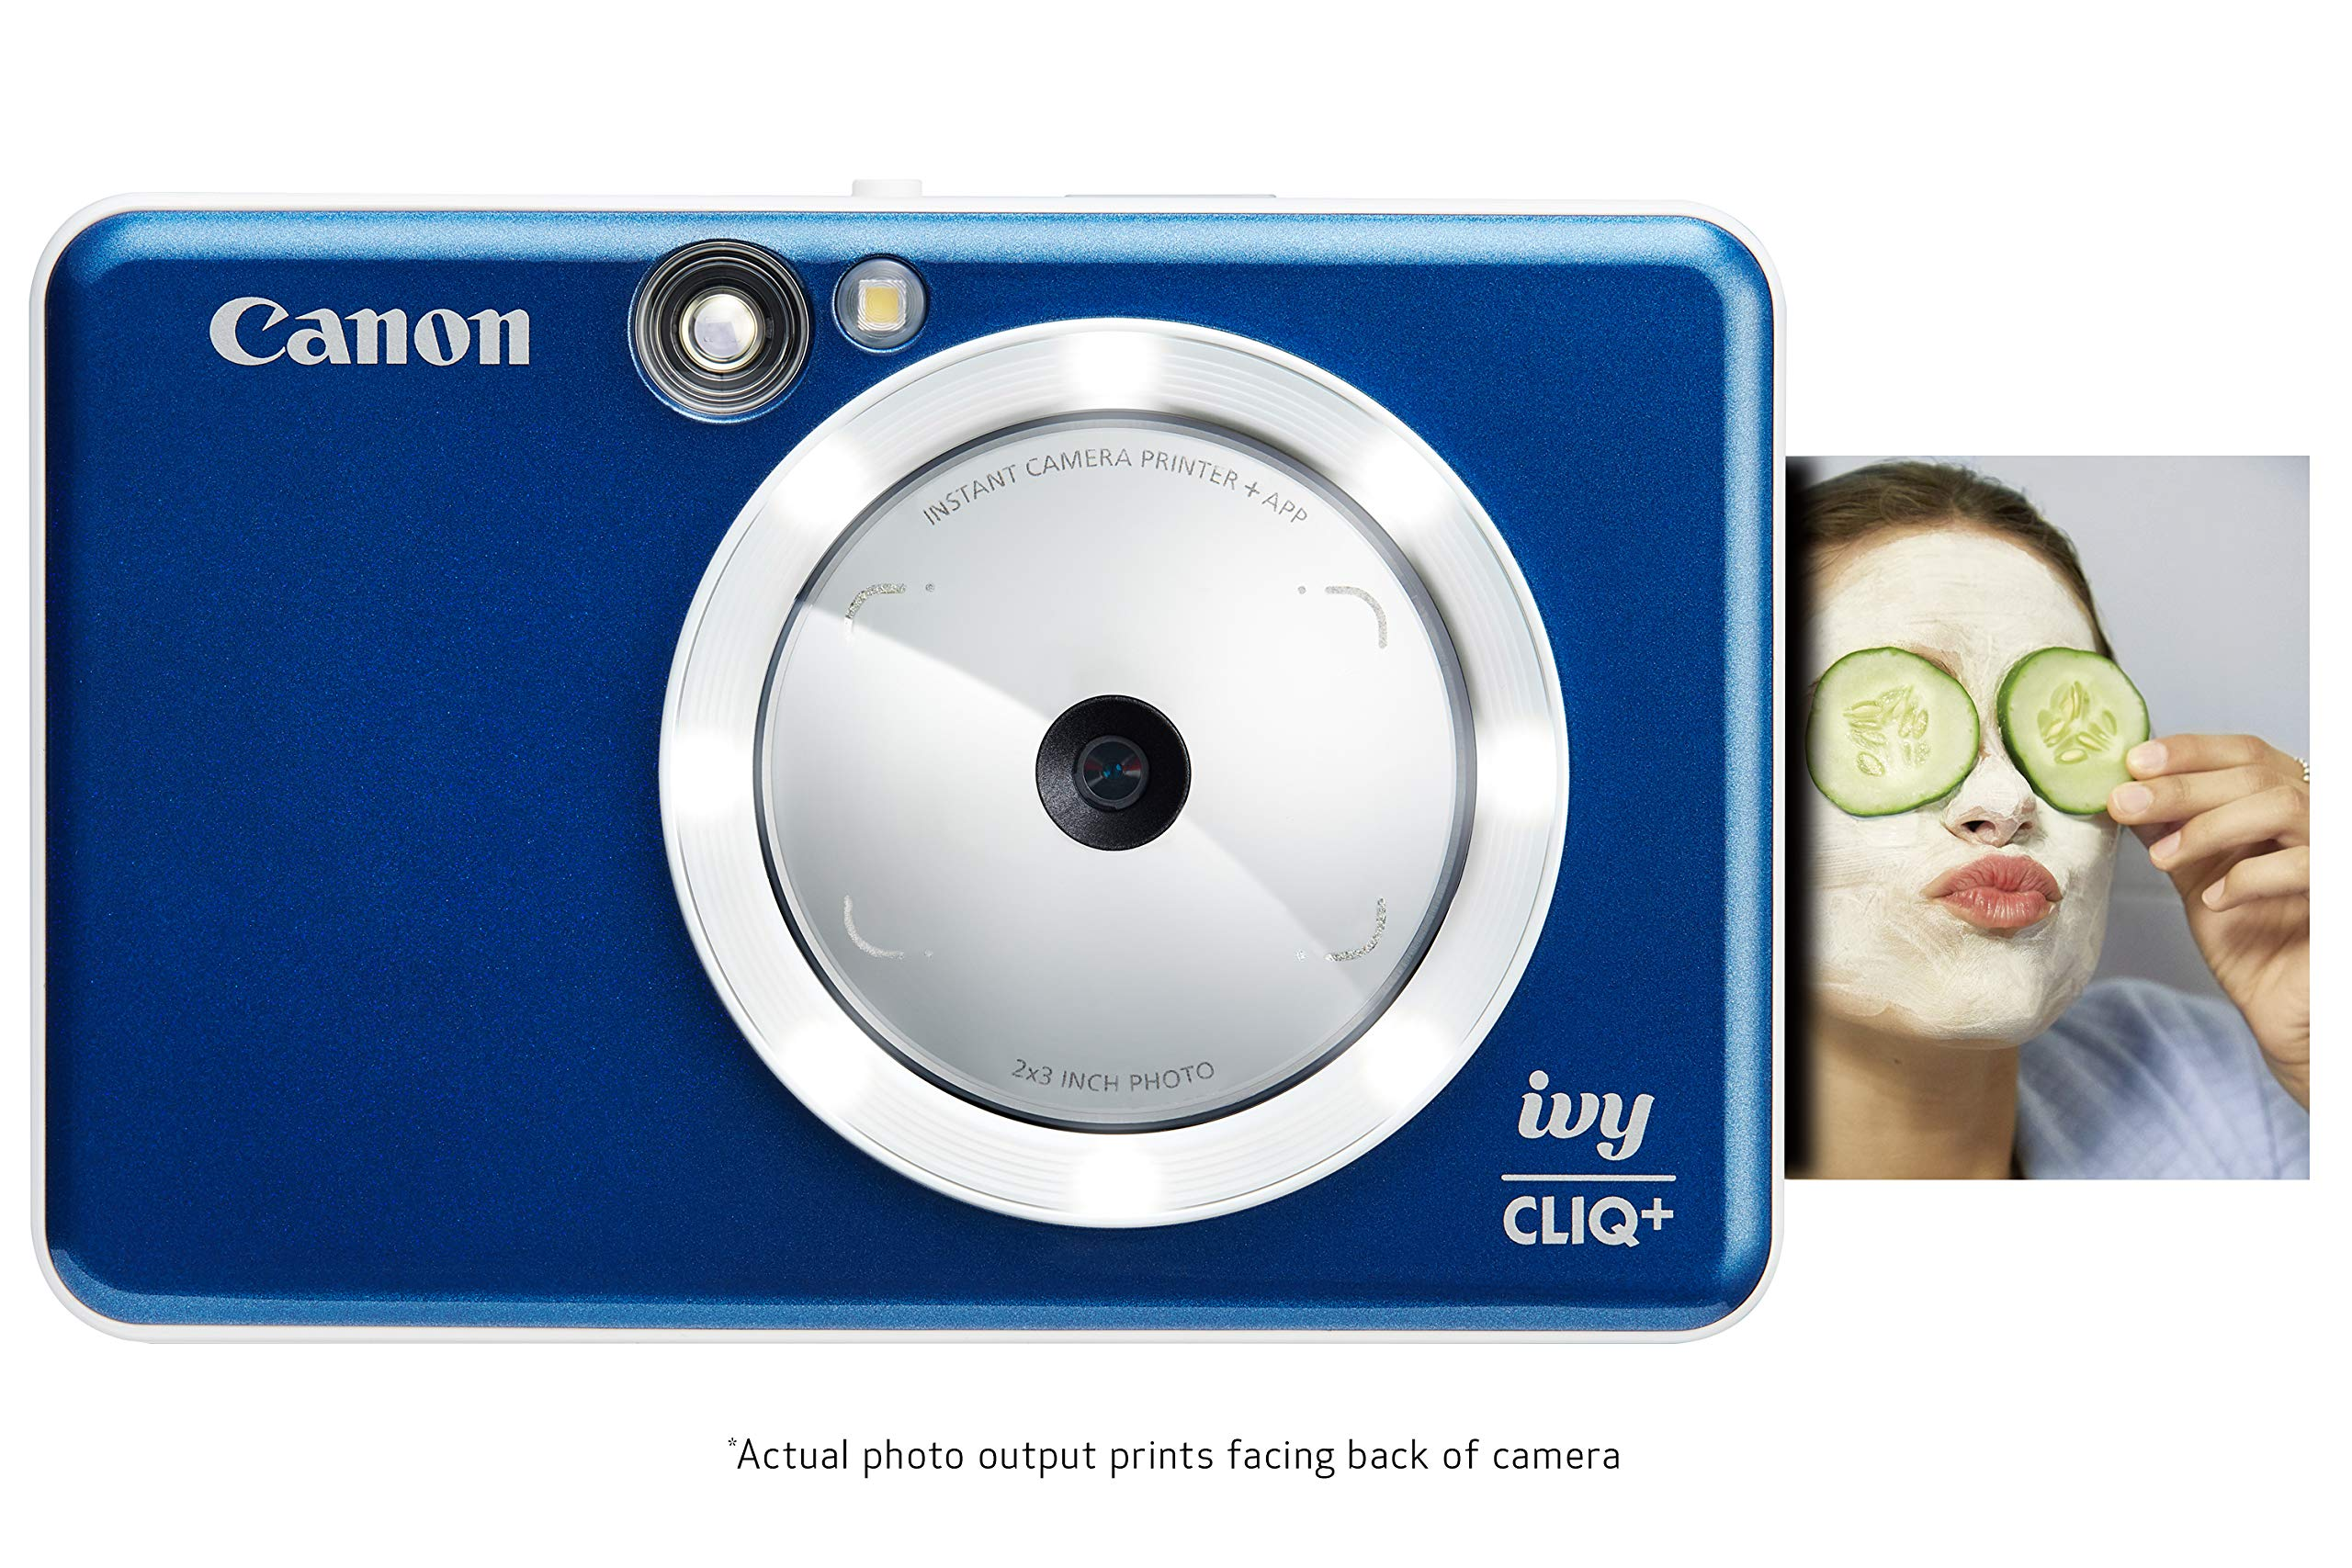 Canon Ivy CLIQ+ Instant Camera Printer, Mobile Photo Printer Via Bluetooth(R), Sapphire Blue